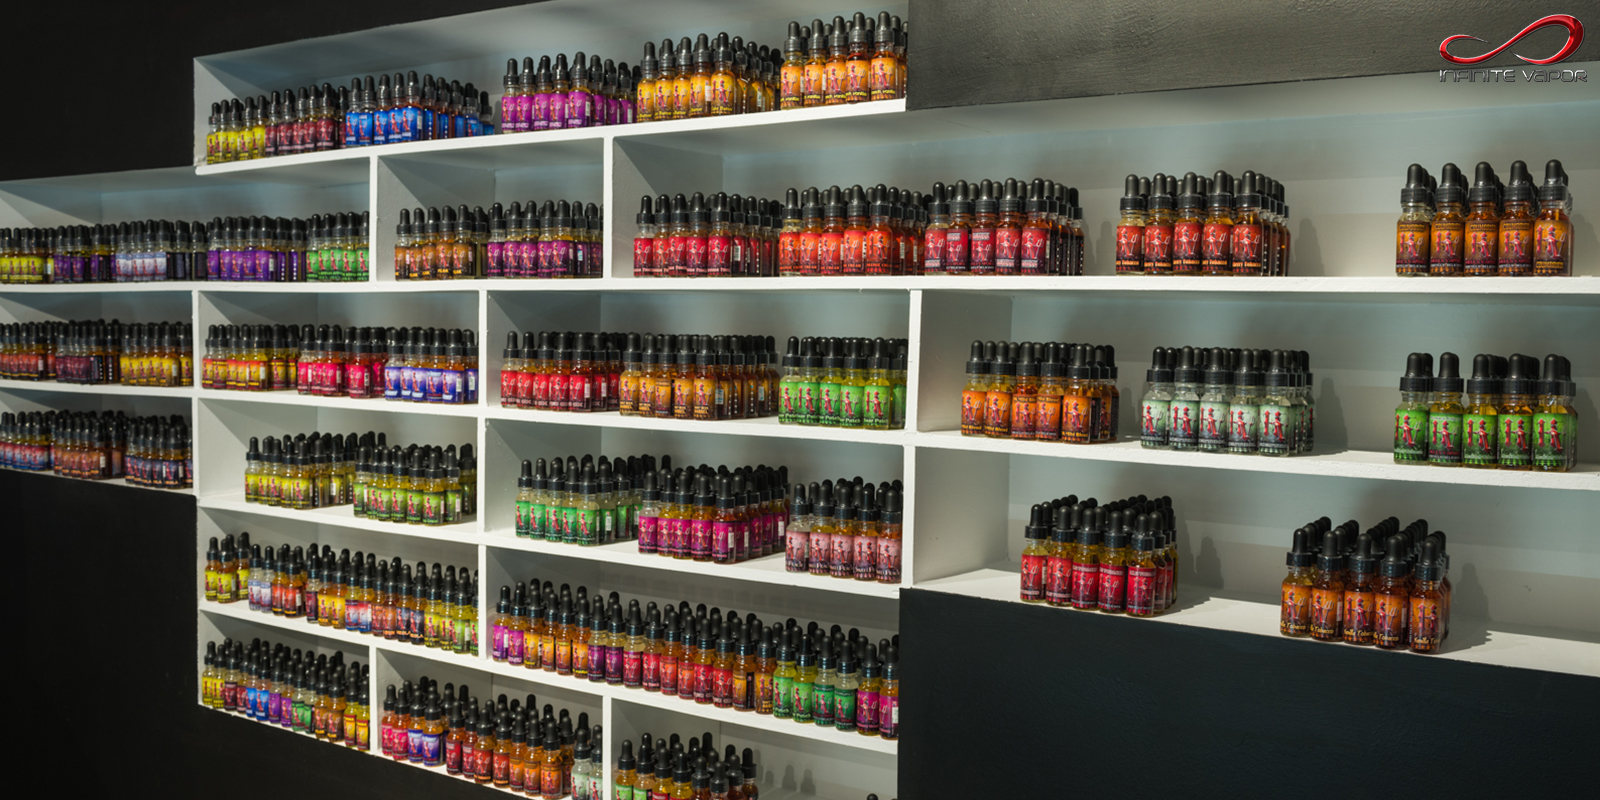 Best Way to Store E-Juice